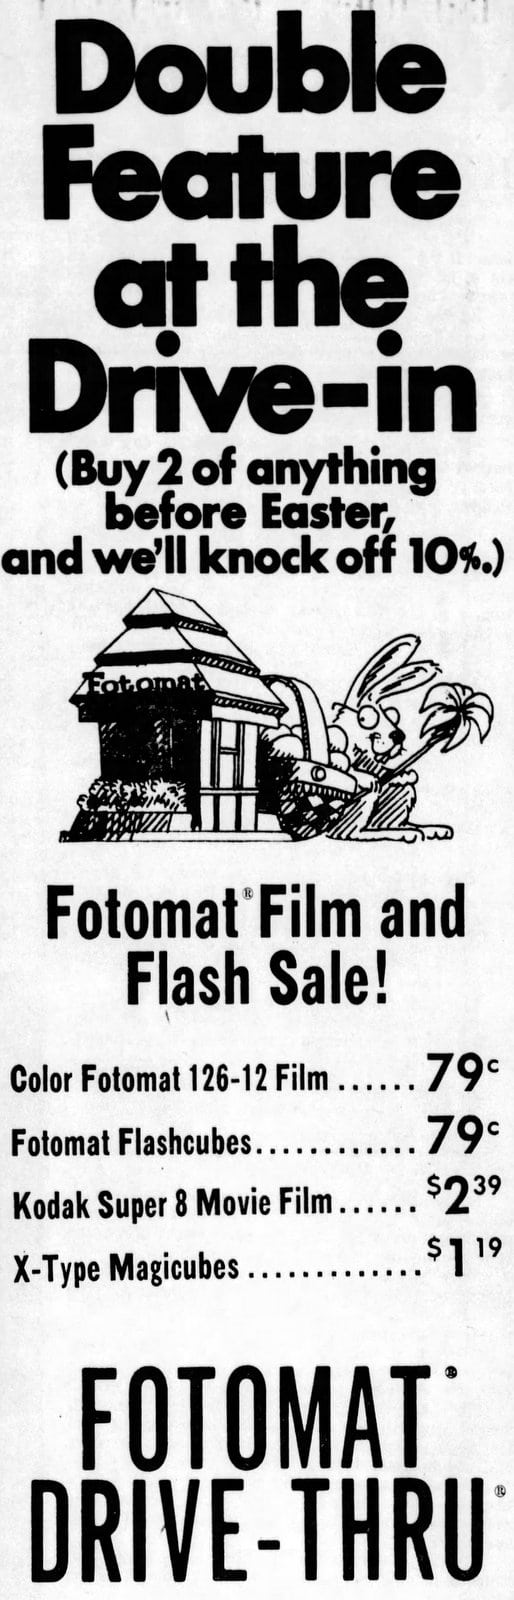 Fotomat film and flash sale